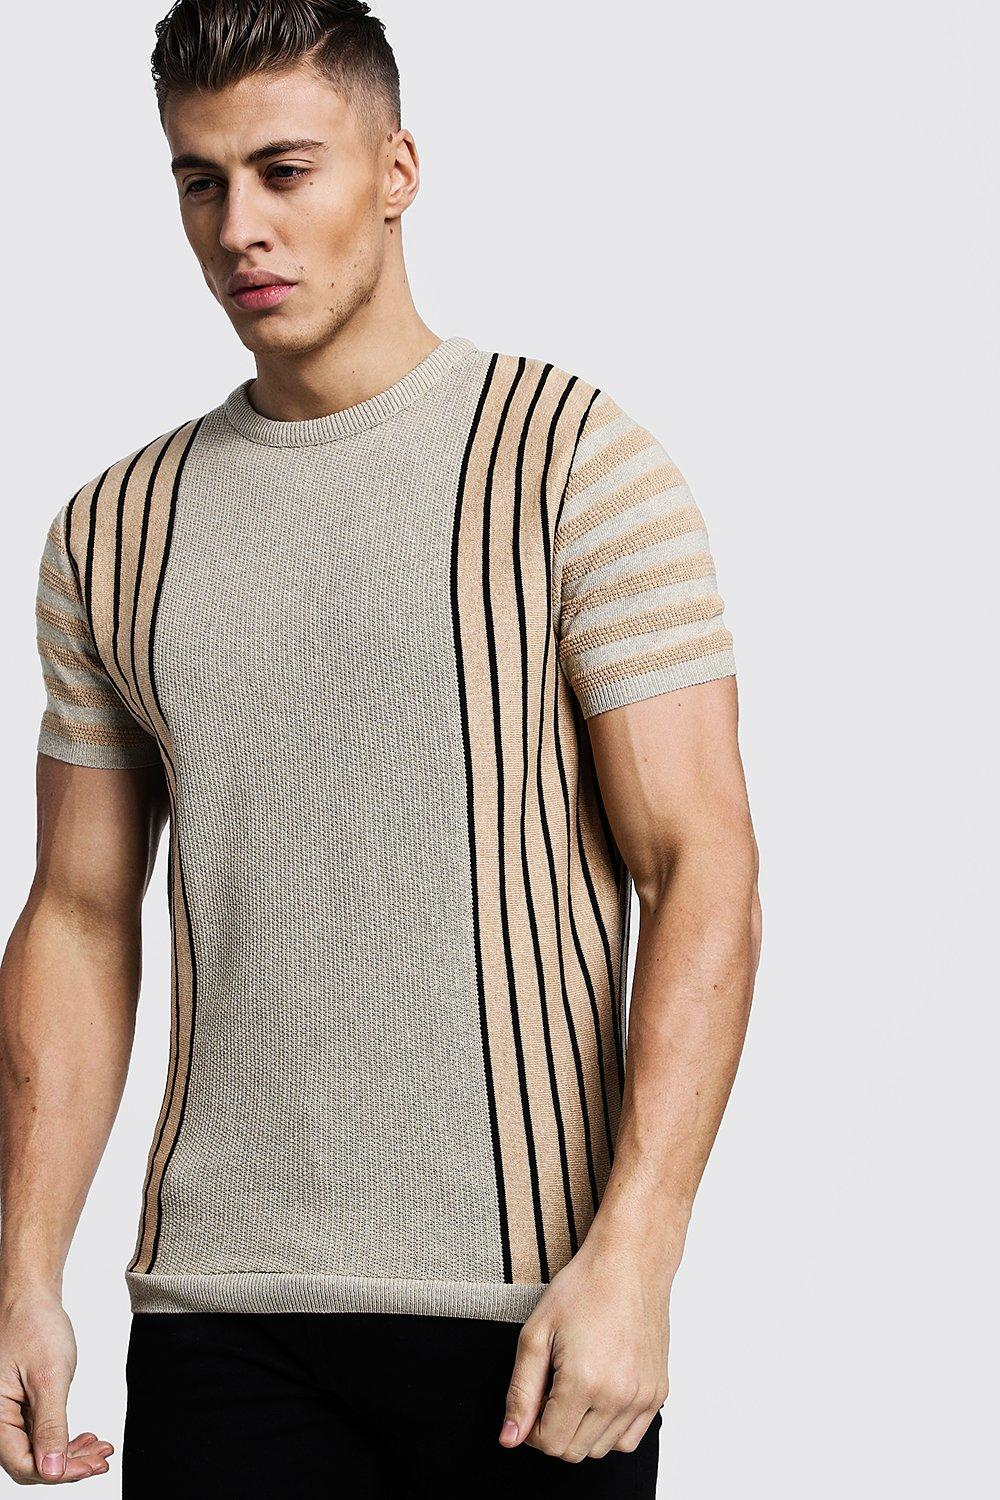 Vertical Stripe Contrast Knitted T-Shirt